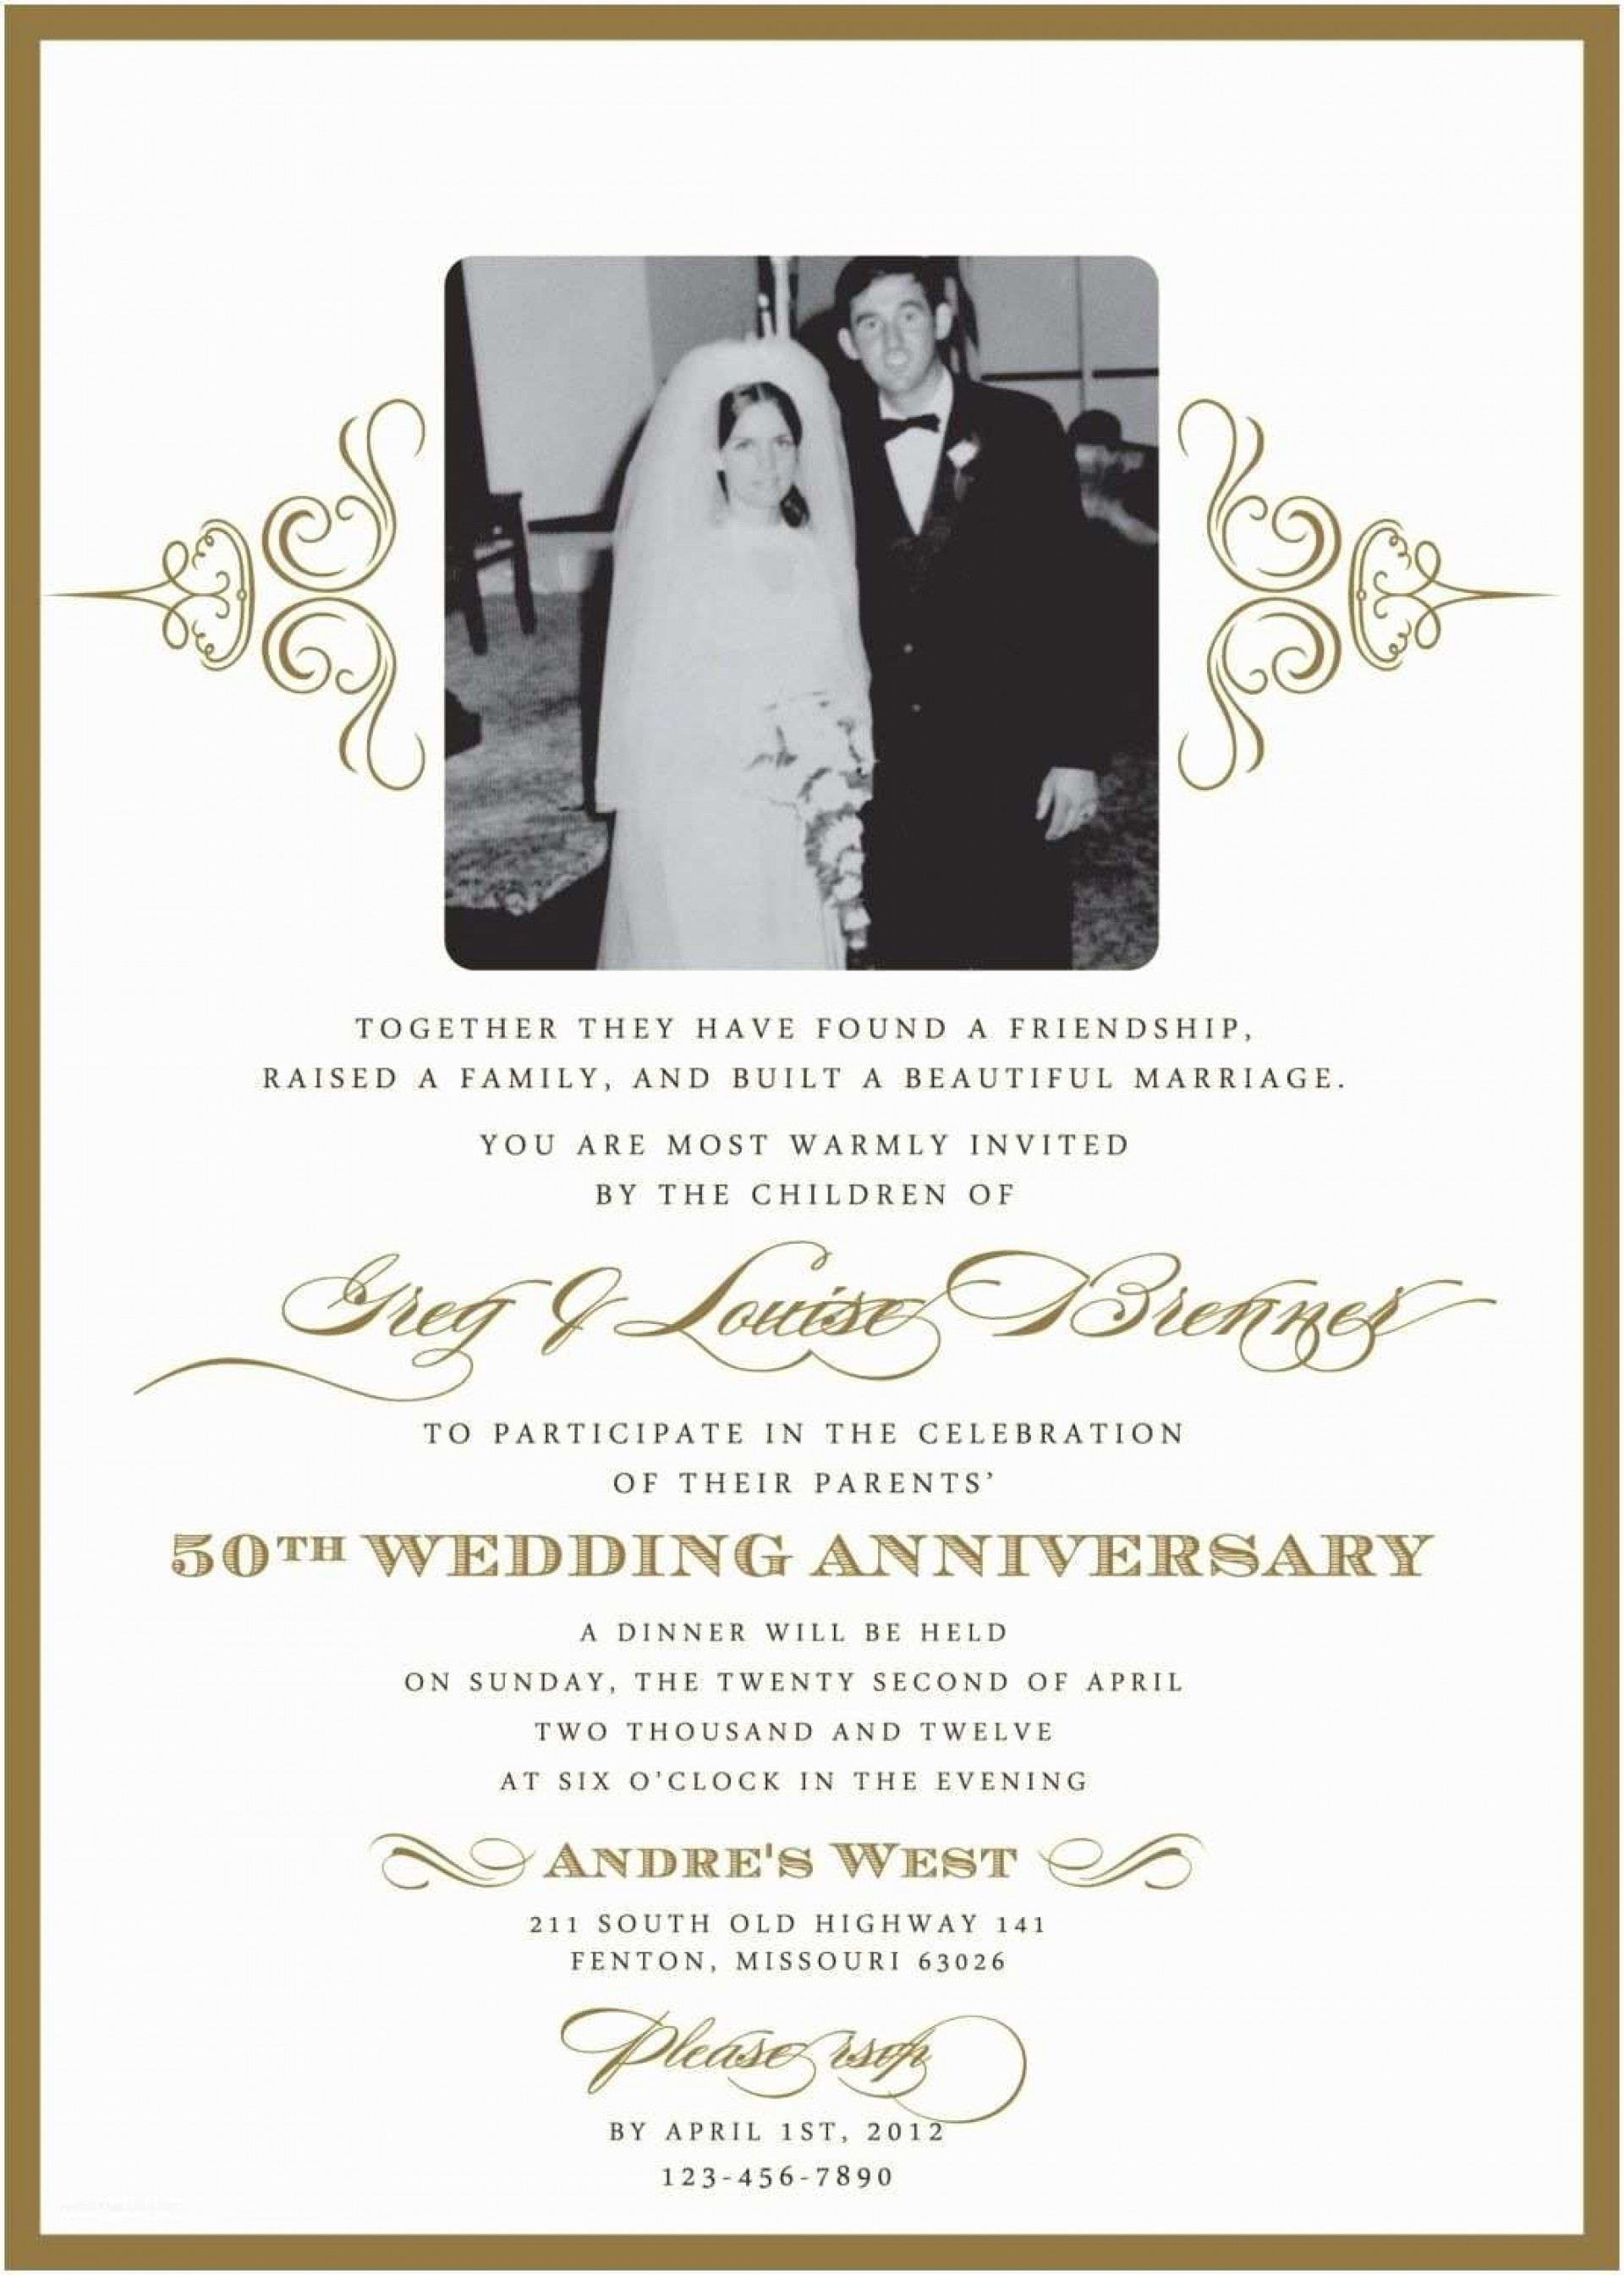 004 Frightening 50th Wedding Anniversary Invitation Template Design  Templates Golden Uk Free Download1920